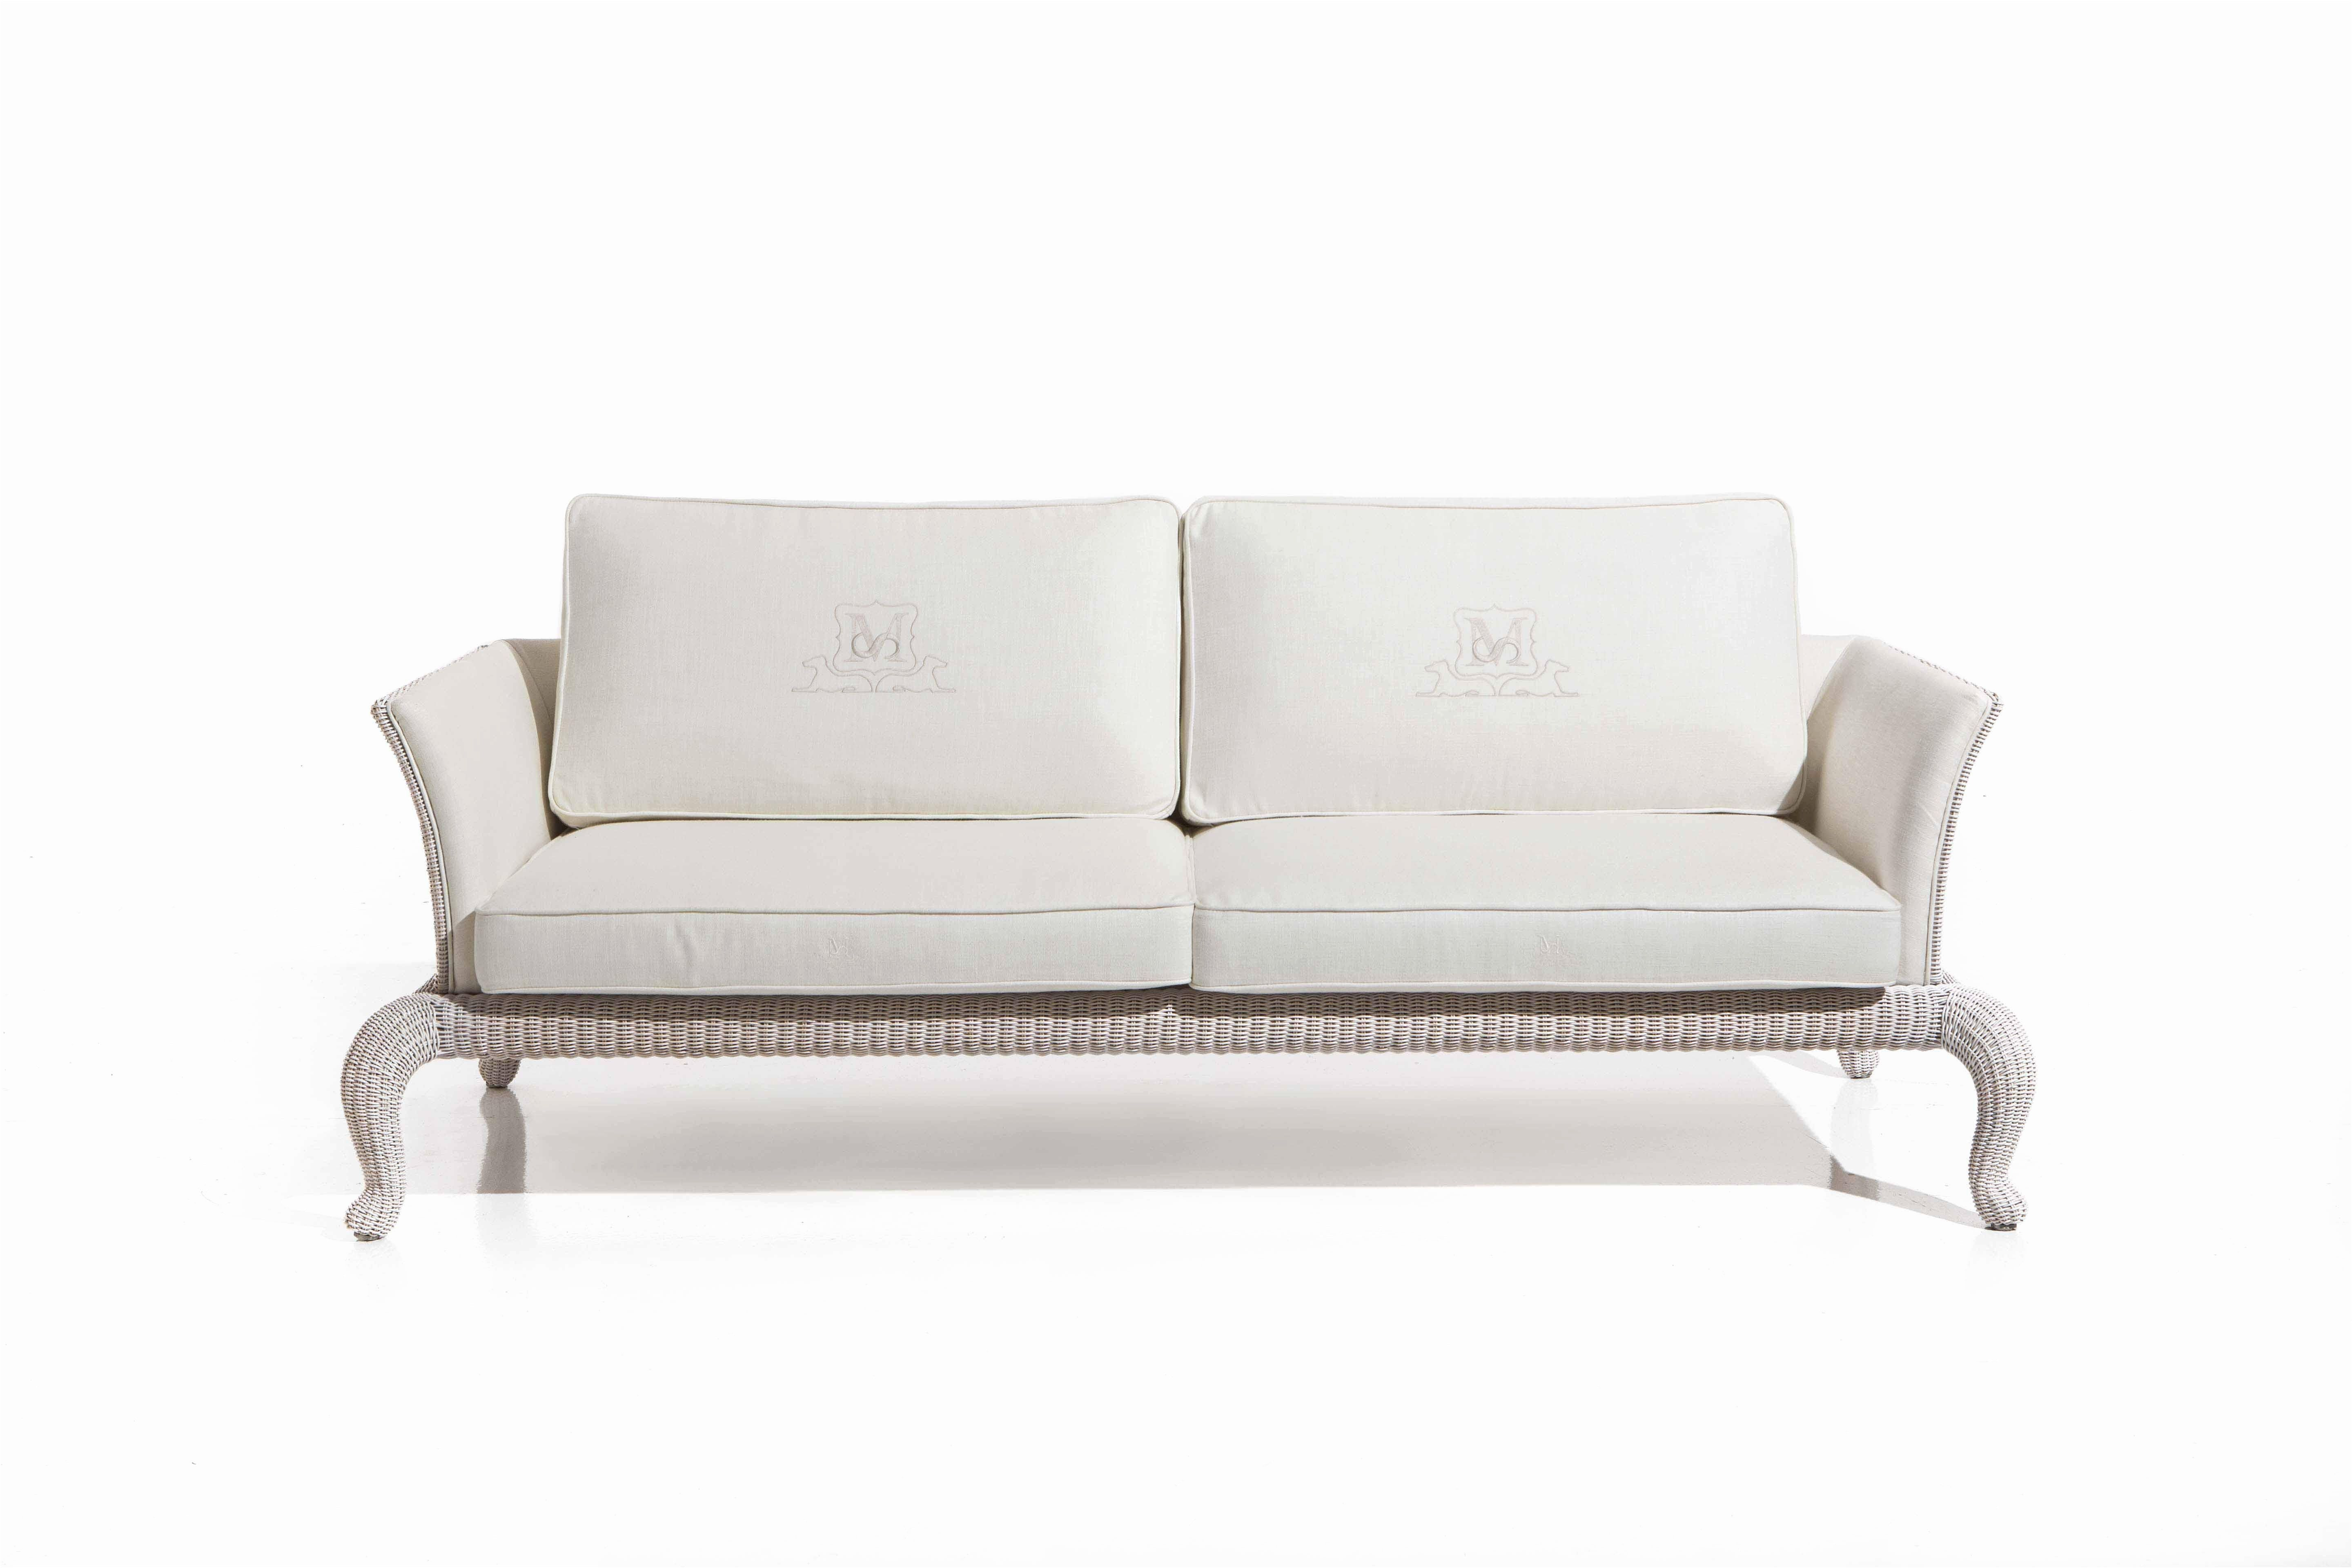 Outstanding Couch 2er Cushions On Sofa White Leather Sofas Sofa Home